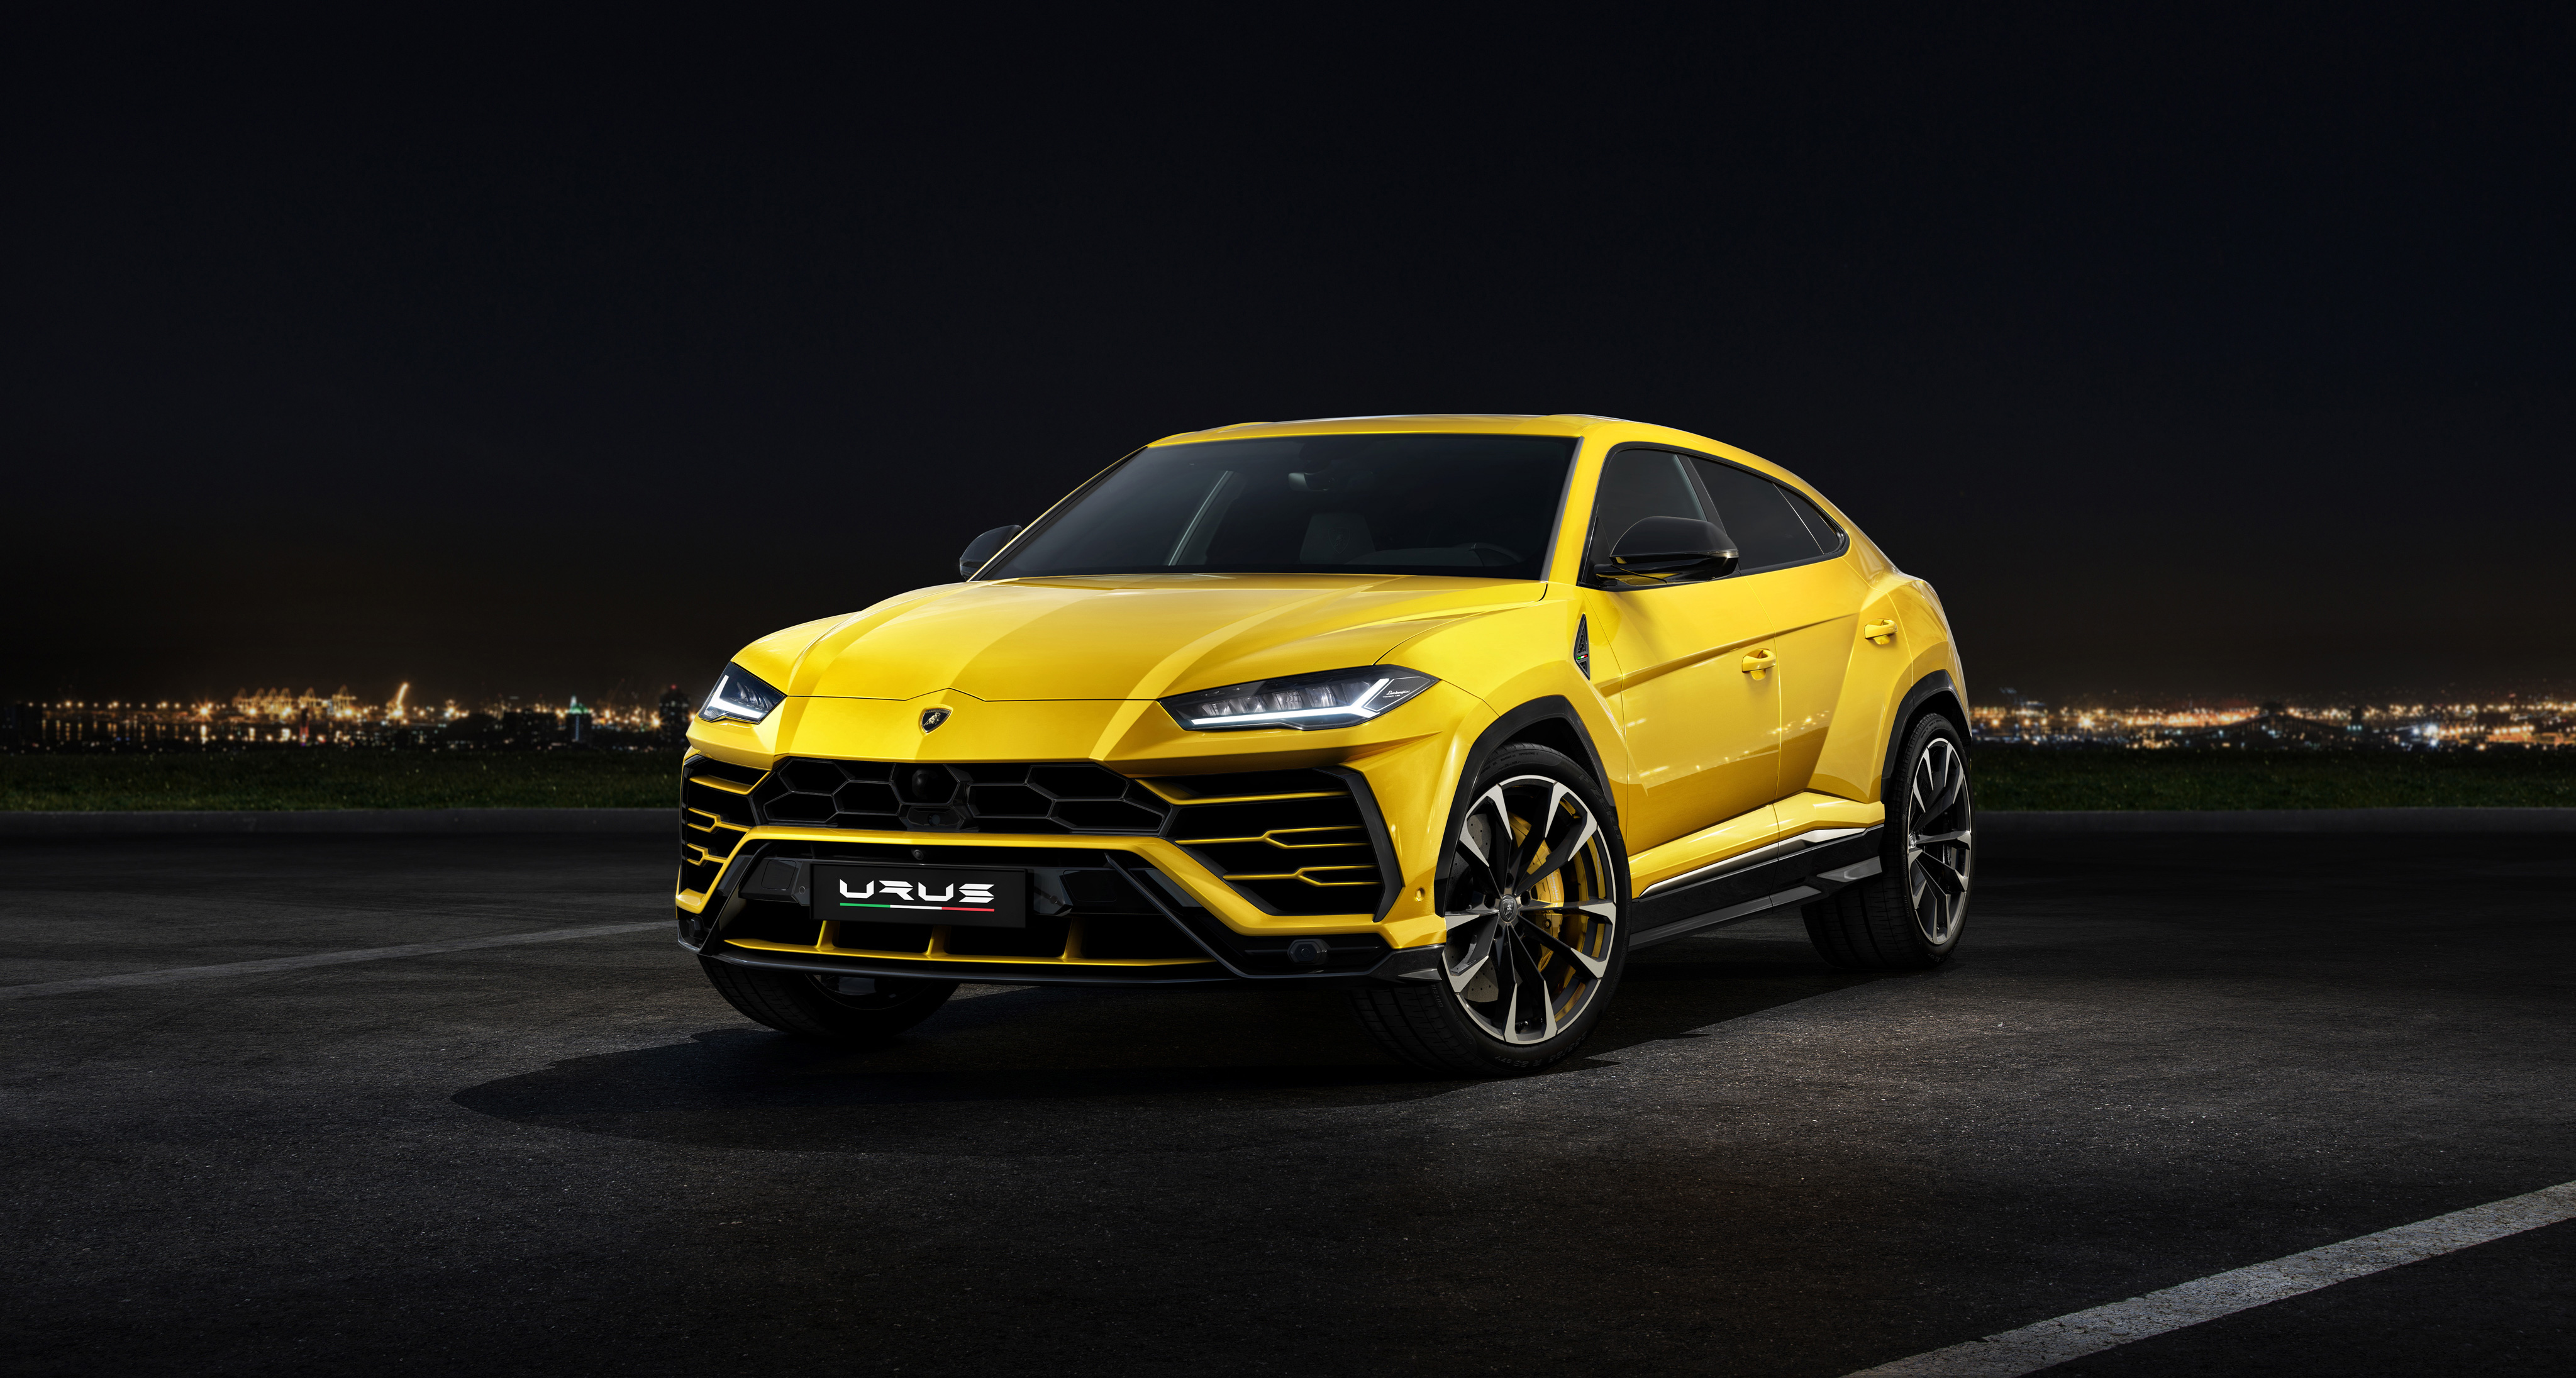 Lamborghini Urus 4k Hd Cars 4k Wallpapers Images